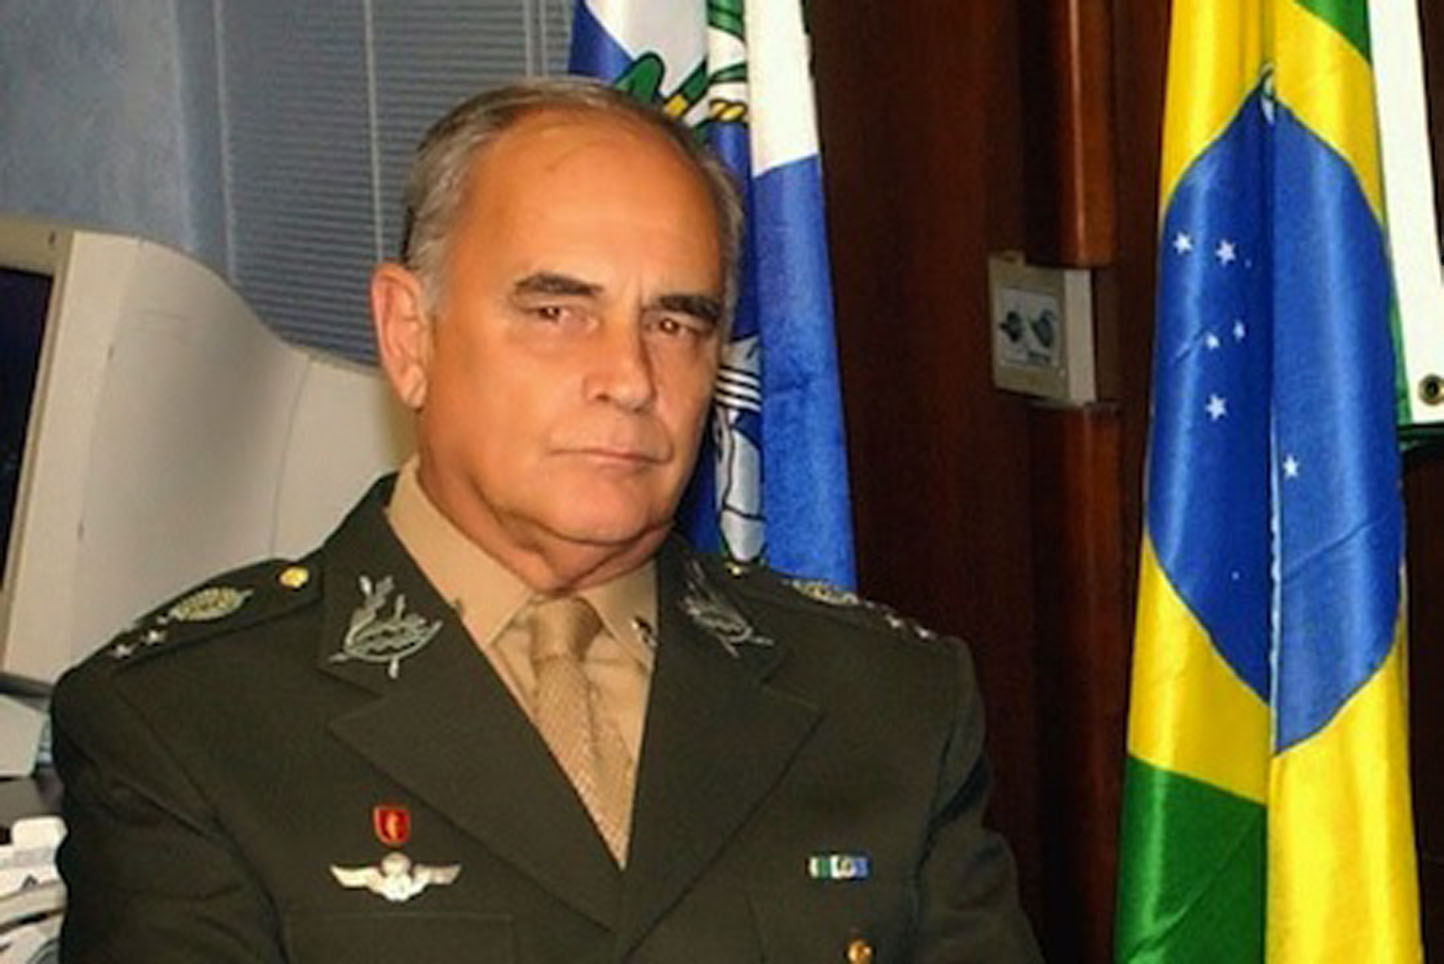 BOMBA! General confirma que haverá intervenção militar